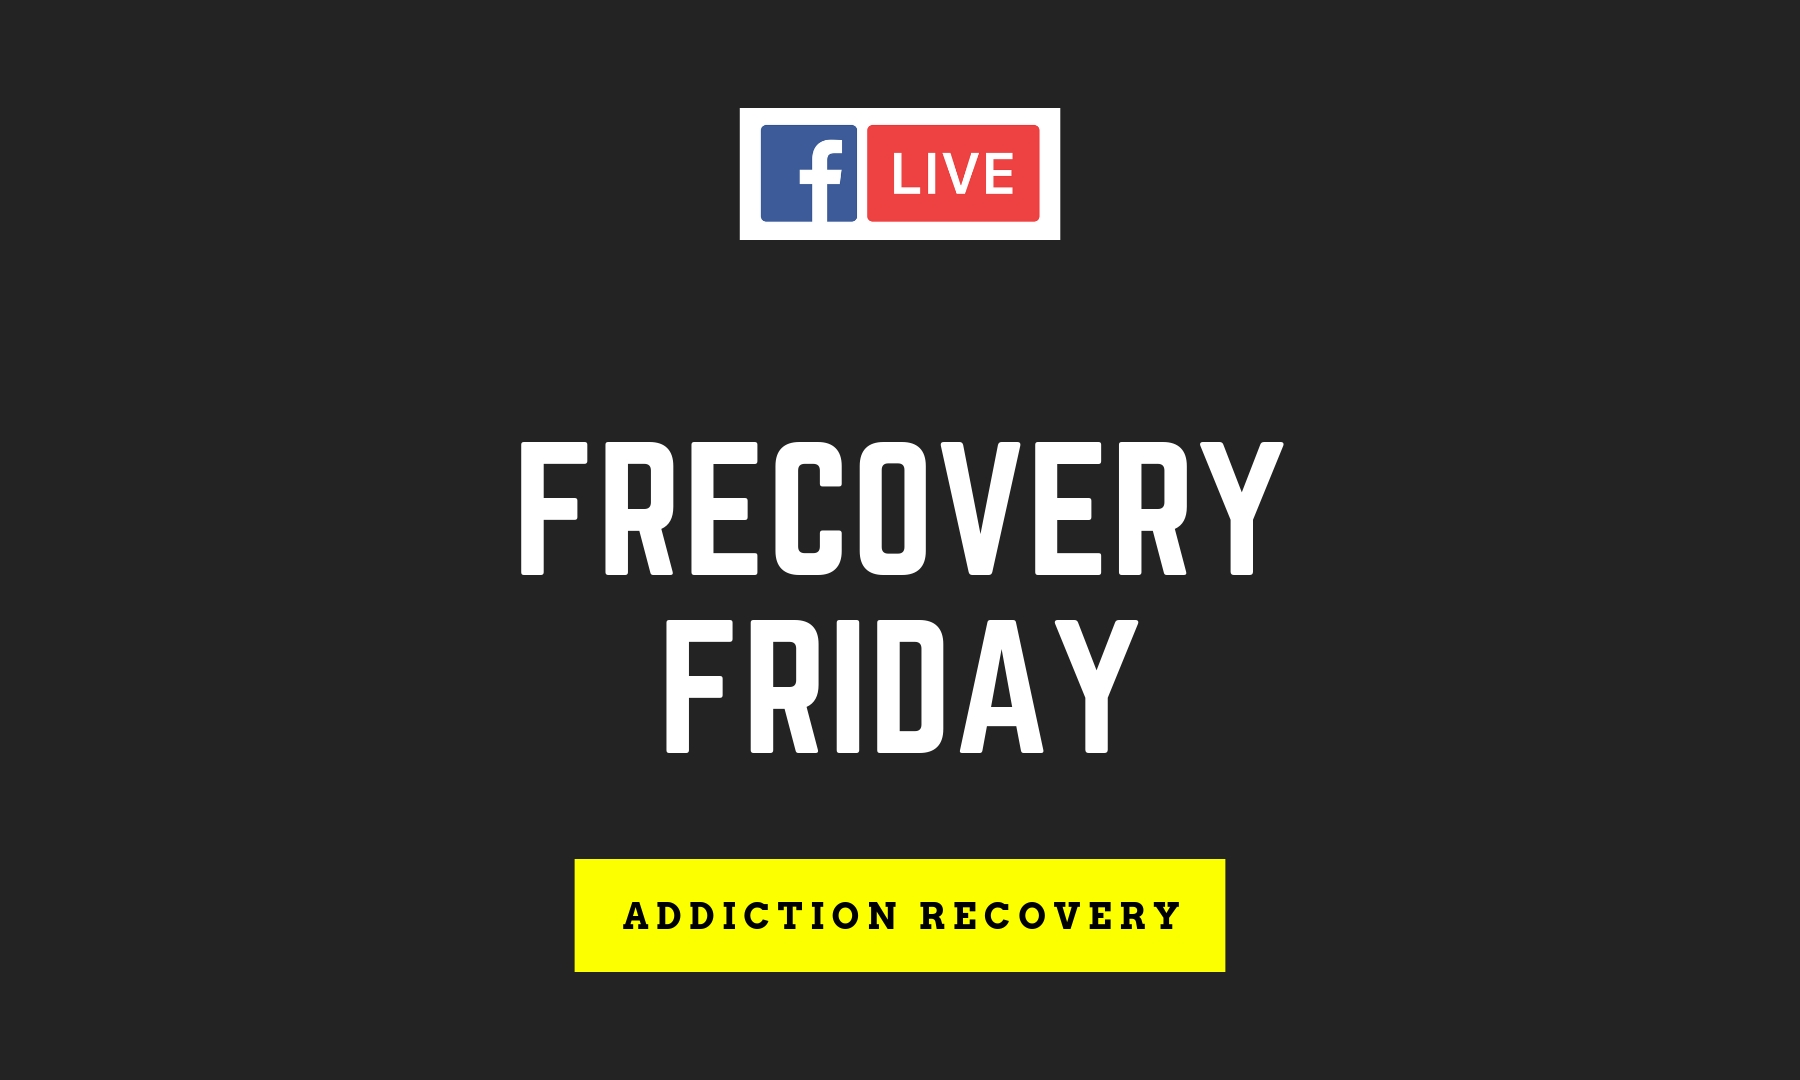 Facebook Live: Frecovery Friday Mindy Andrade – BluNovus